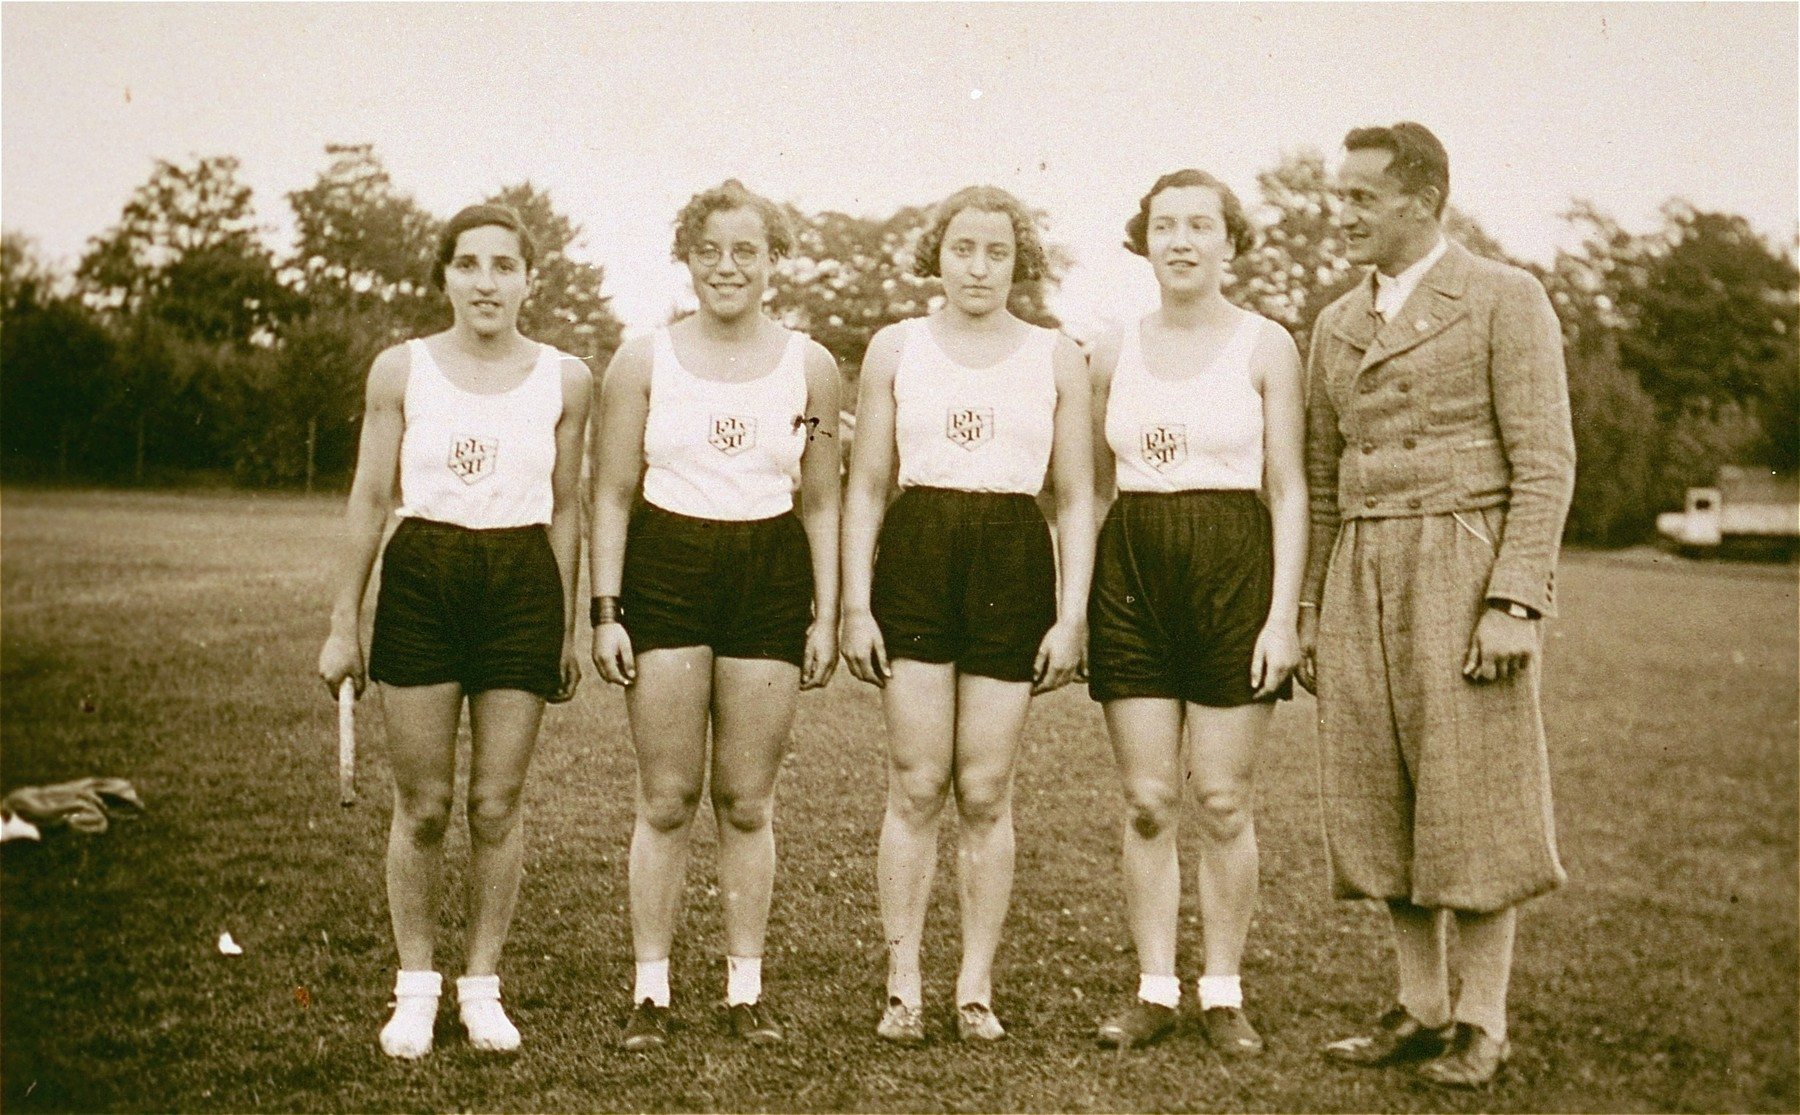 Four members of the women's handball team sponsored by the  Reichsbund juedischer Frontsoldaten sports club at the West German Meisterschaft competition in Cologne.    The donor, Ilse Dahl is pictured fourth from the left.